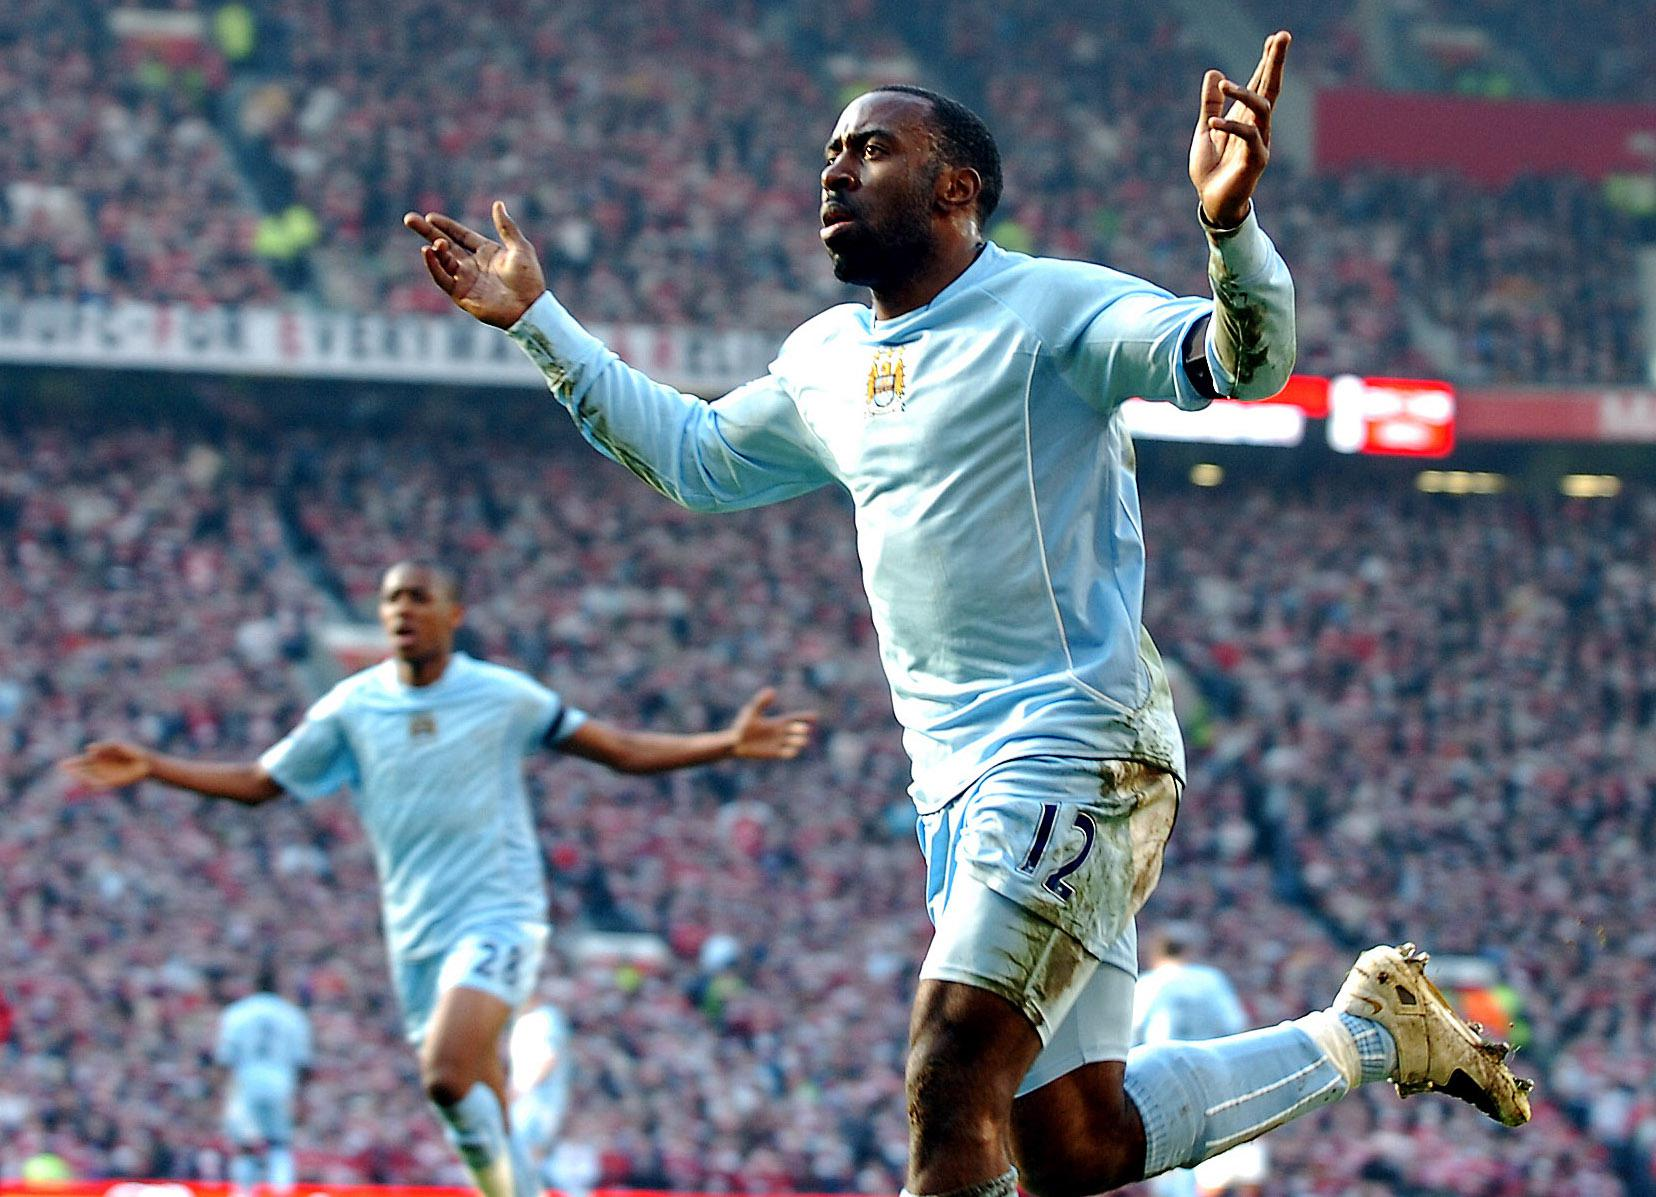 Vassell donned City's one-off kit for the Munich air disaster